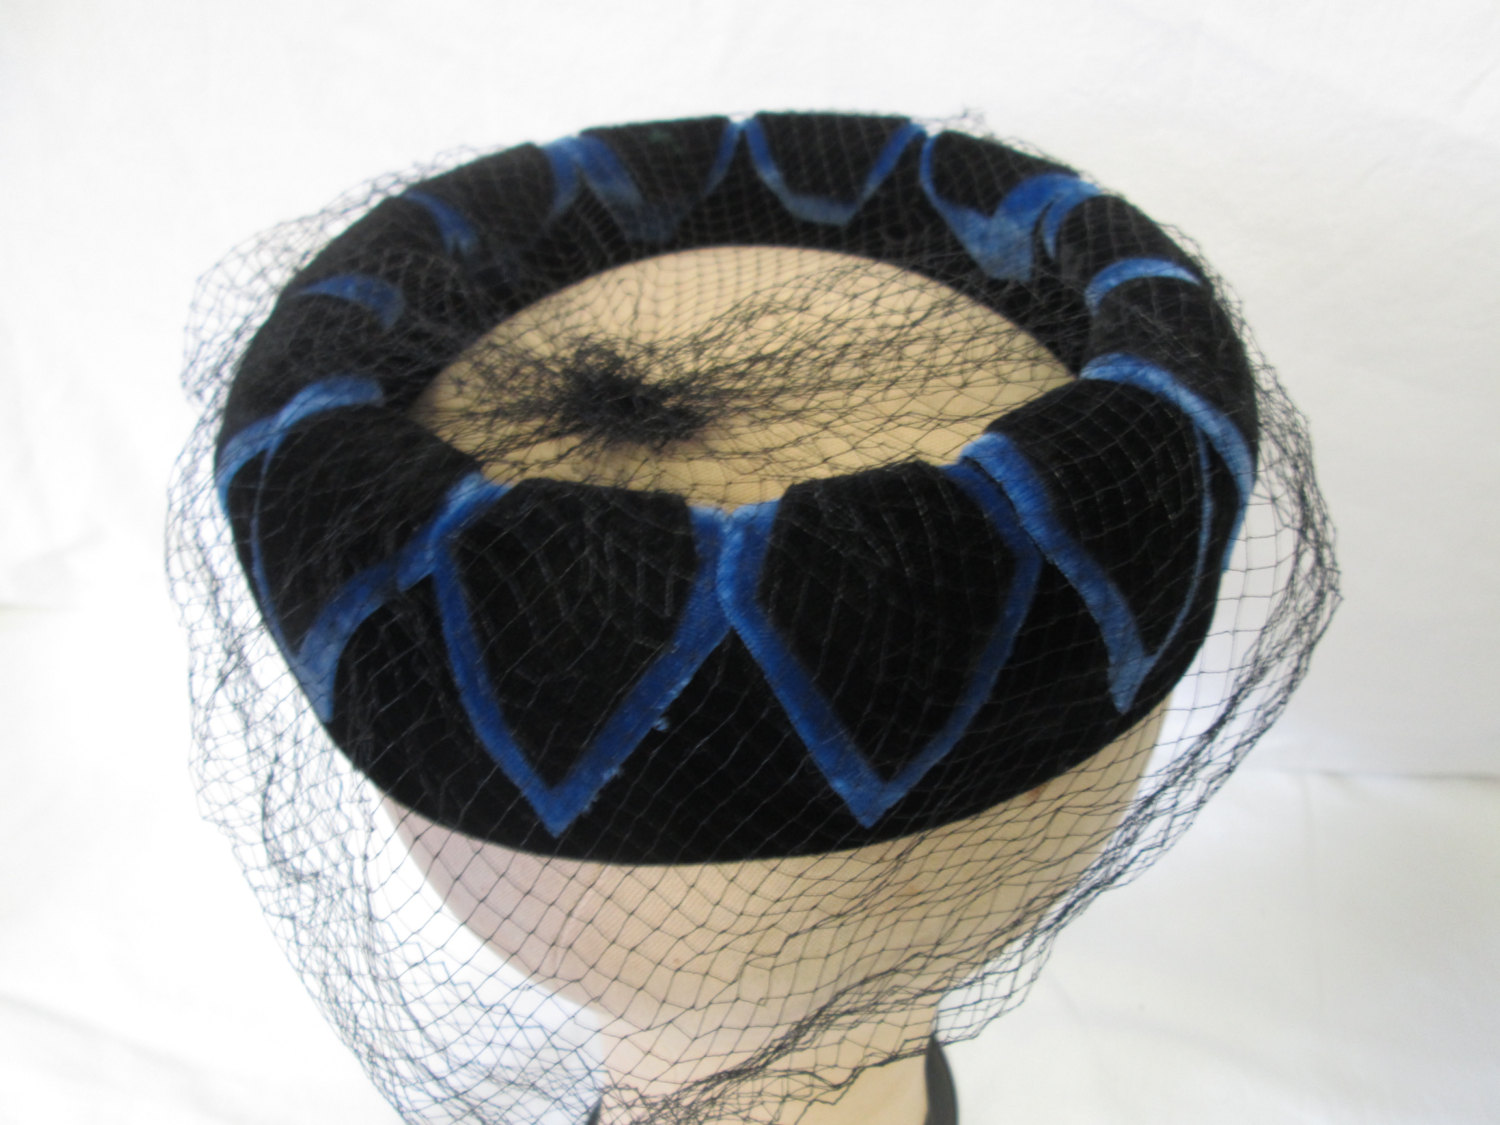 Antique Navy and Royal Blue Velvet pillbox hat ring with black netting  beautiful pattern and design f7dc97f8cf2